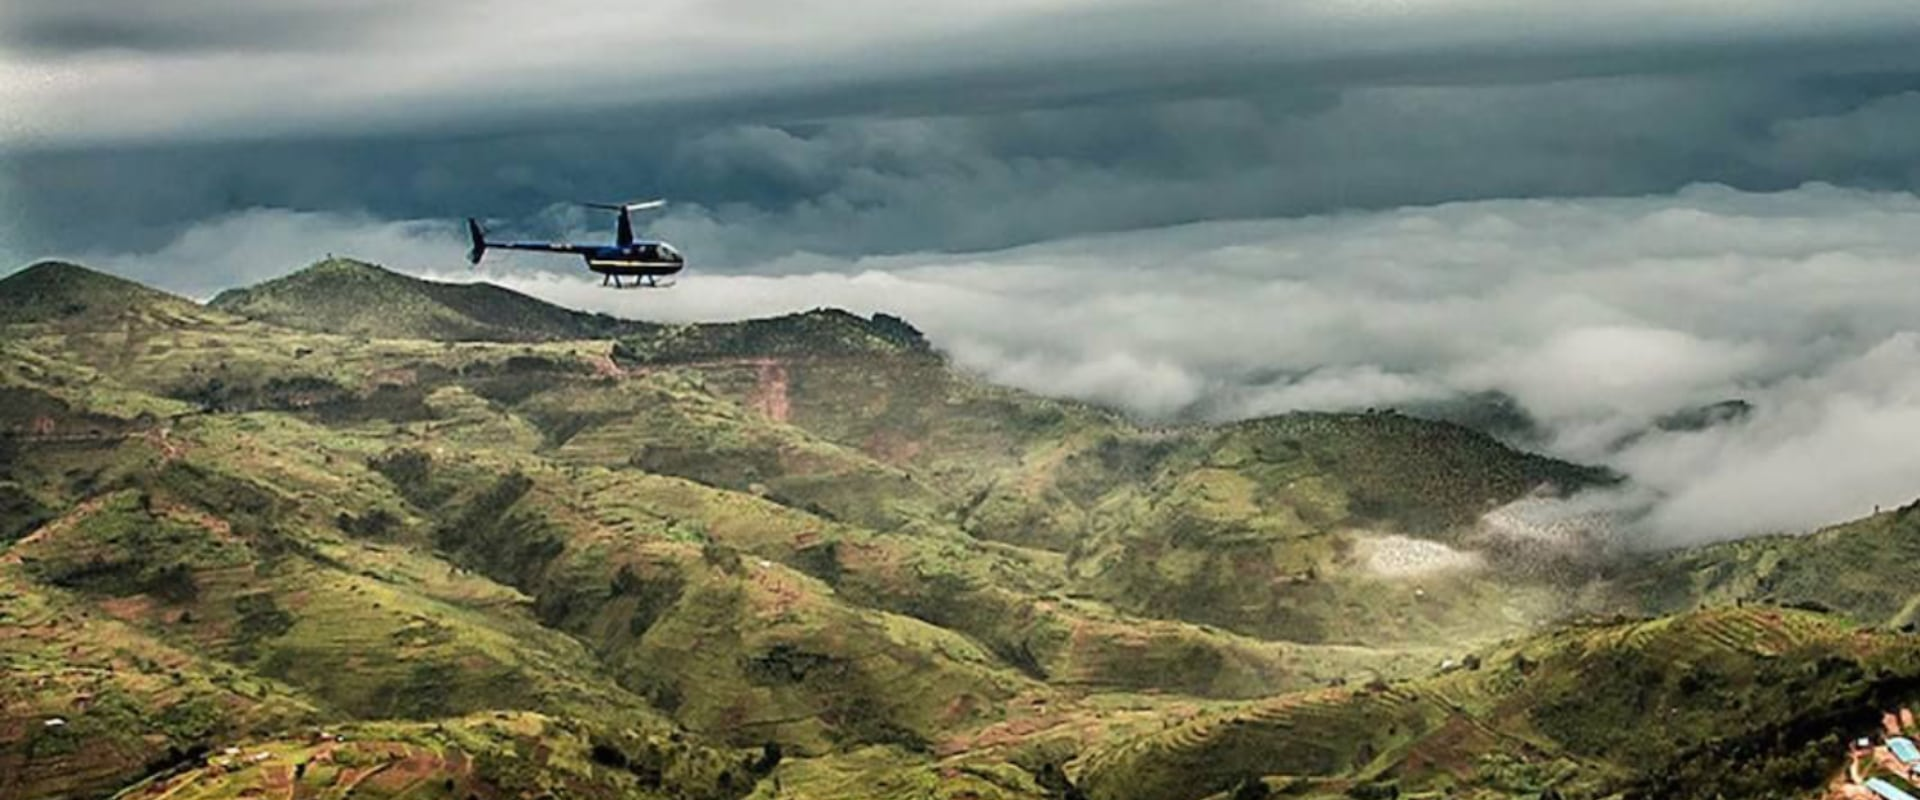 Take a helicopter flight over Rwanda's countryside